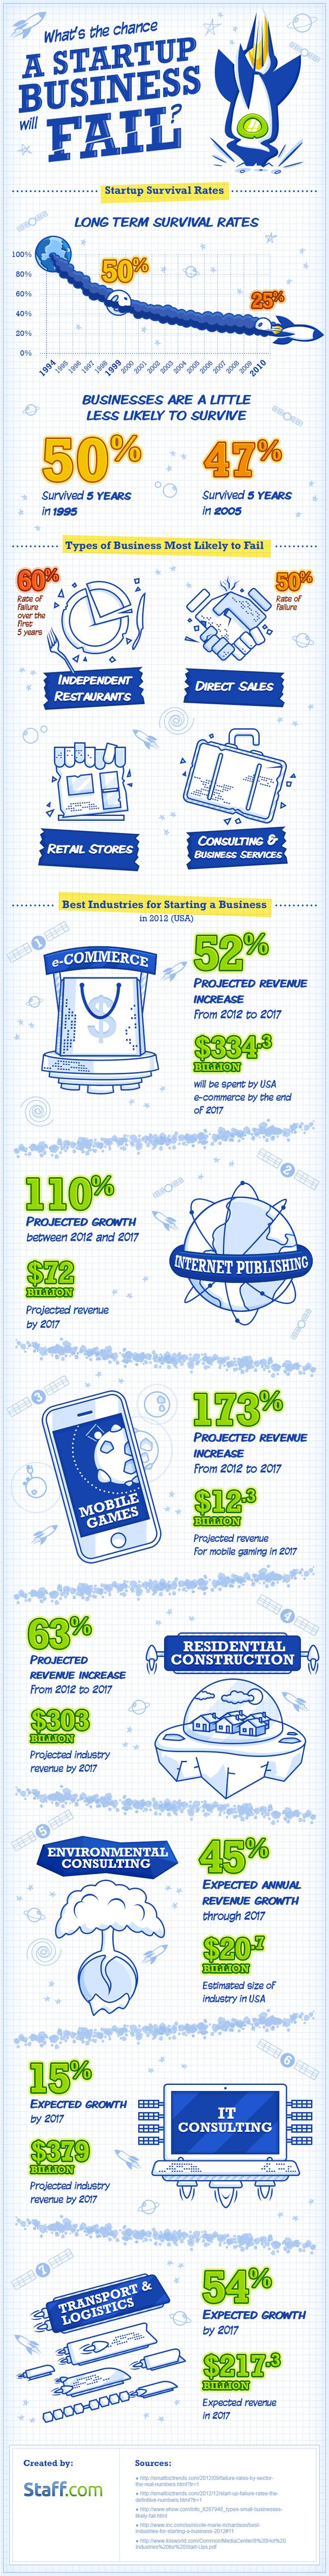 Unique Infographic Design, What's the Chance a Startup Business will Fail? #Infographic #Design (http://www.pinterest.com/aldenchong/)